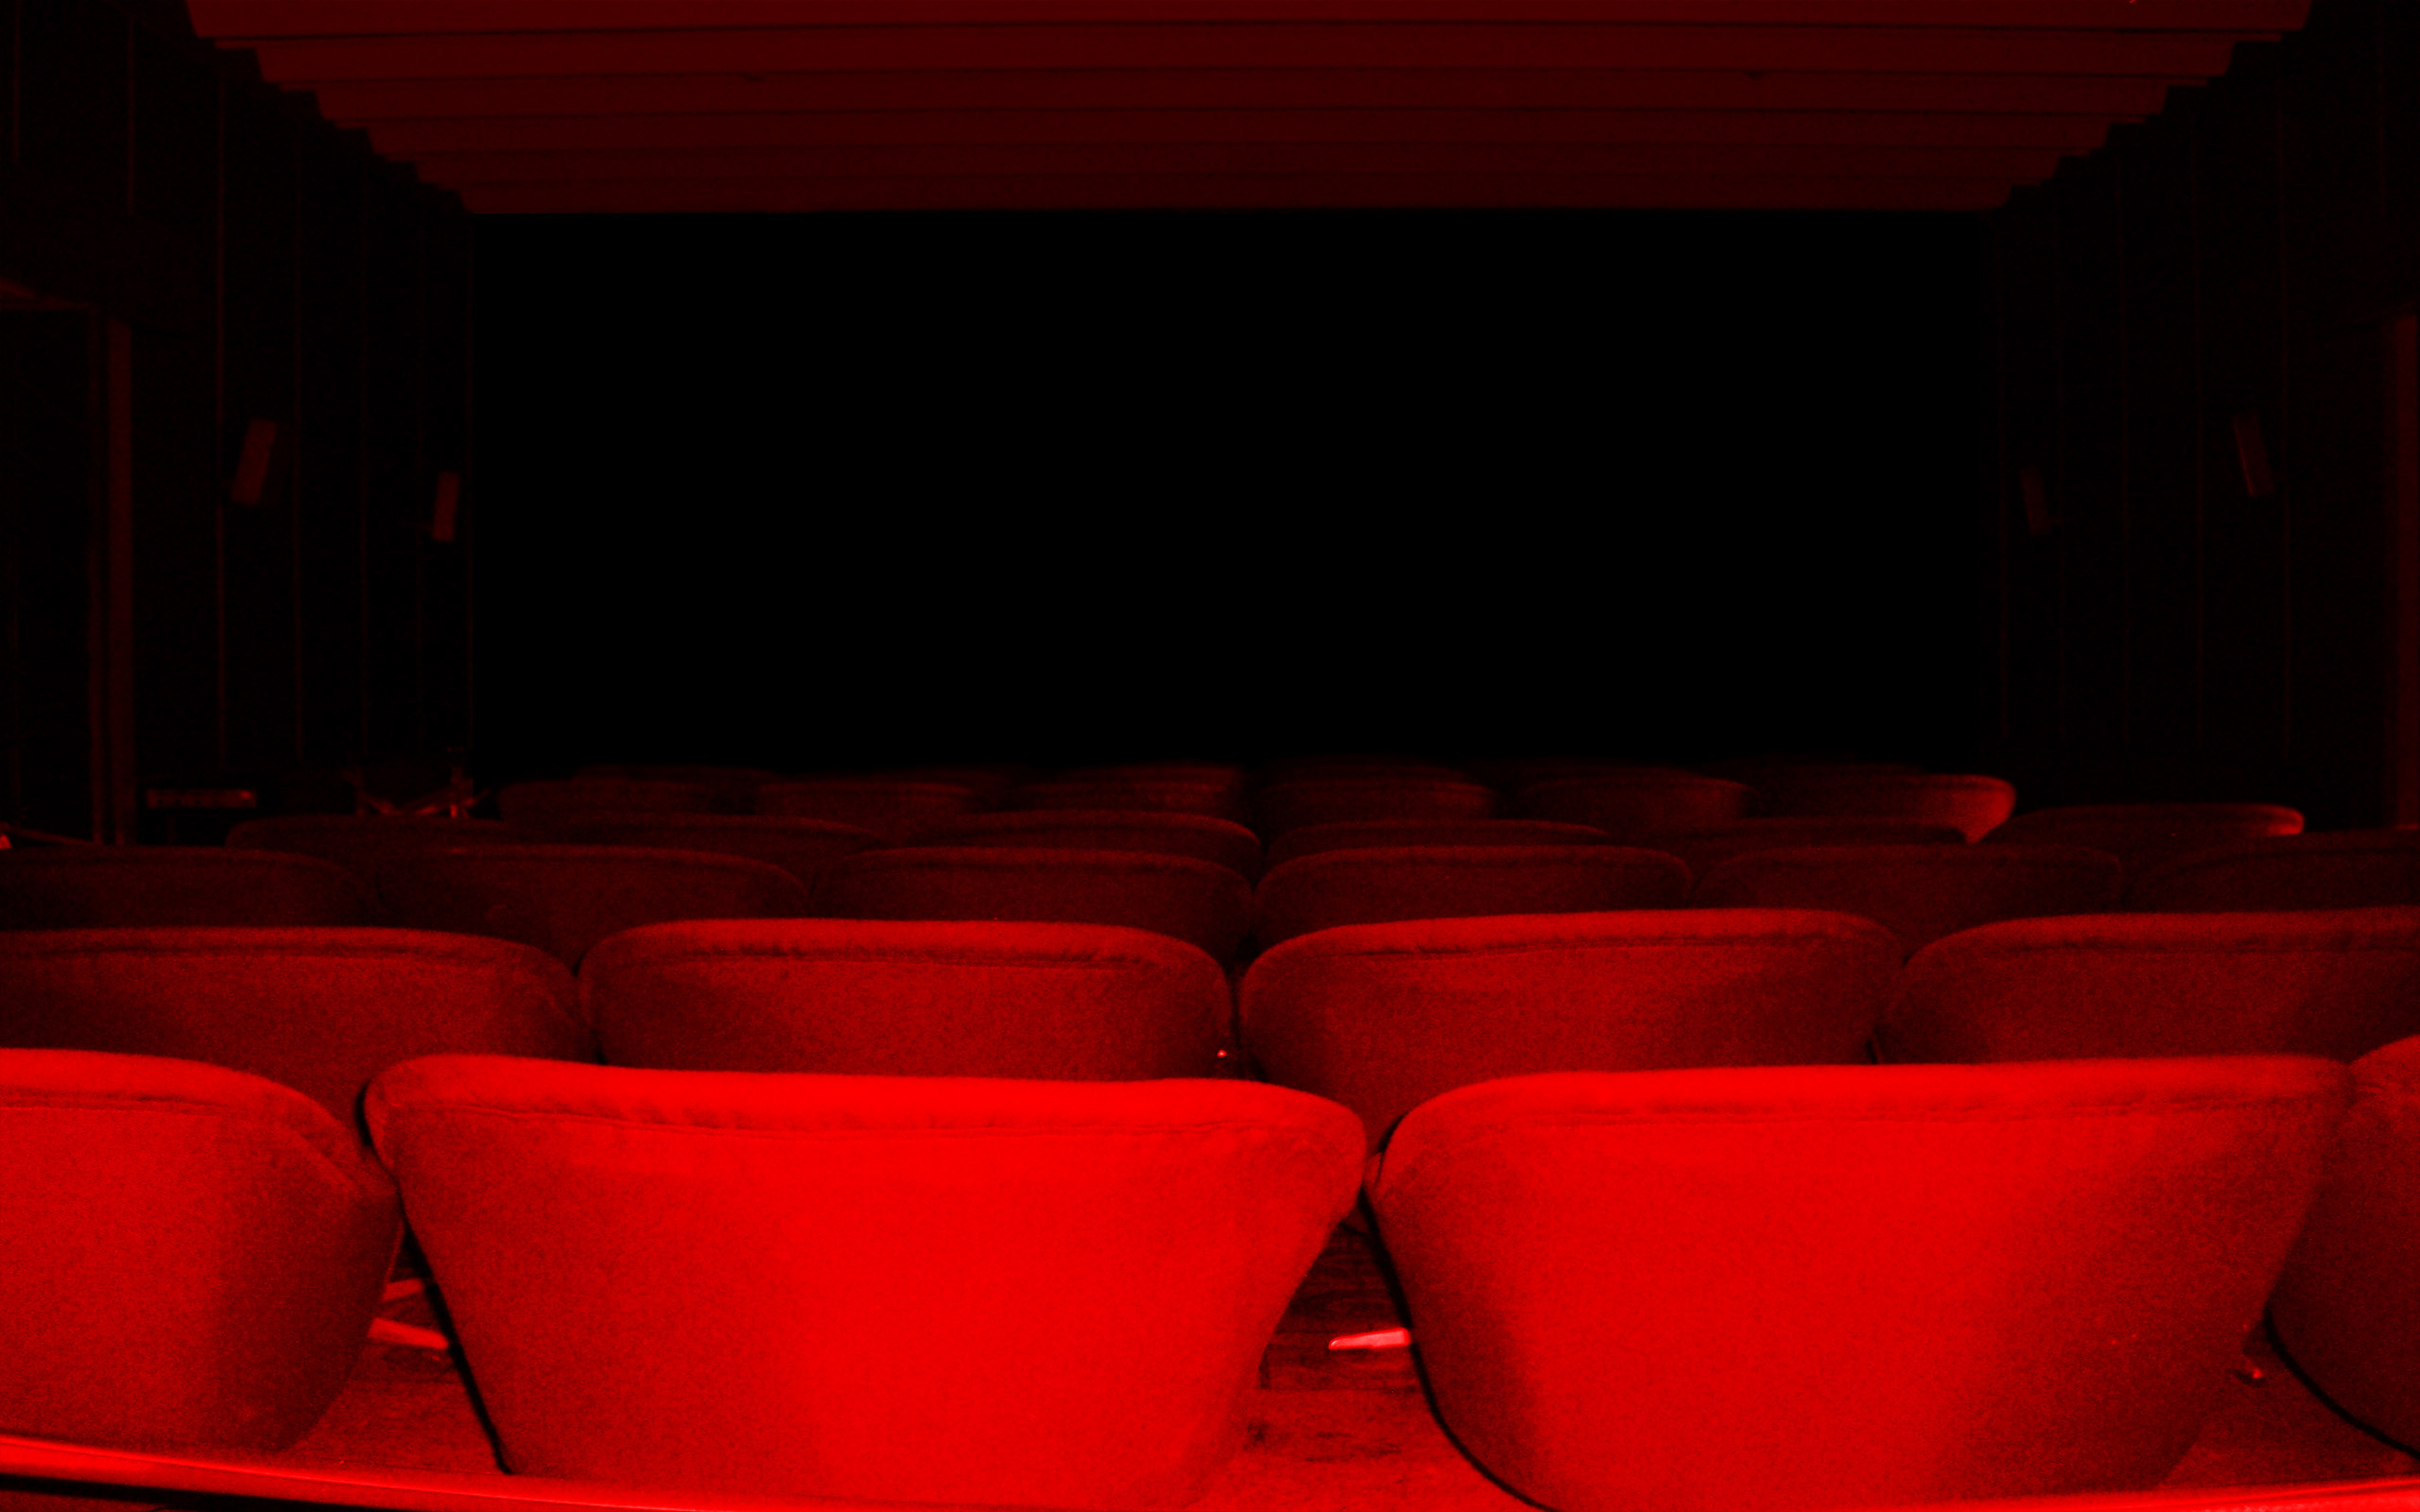 Home Theater Wallpaper For Desktop 53 Images